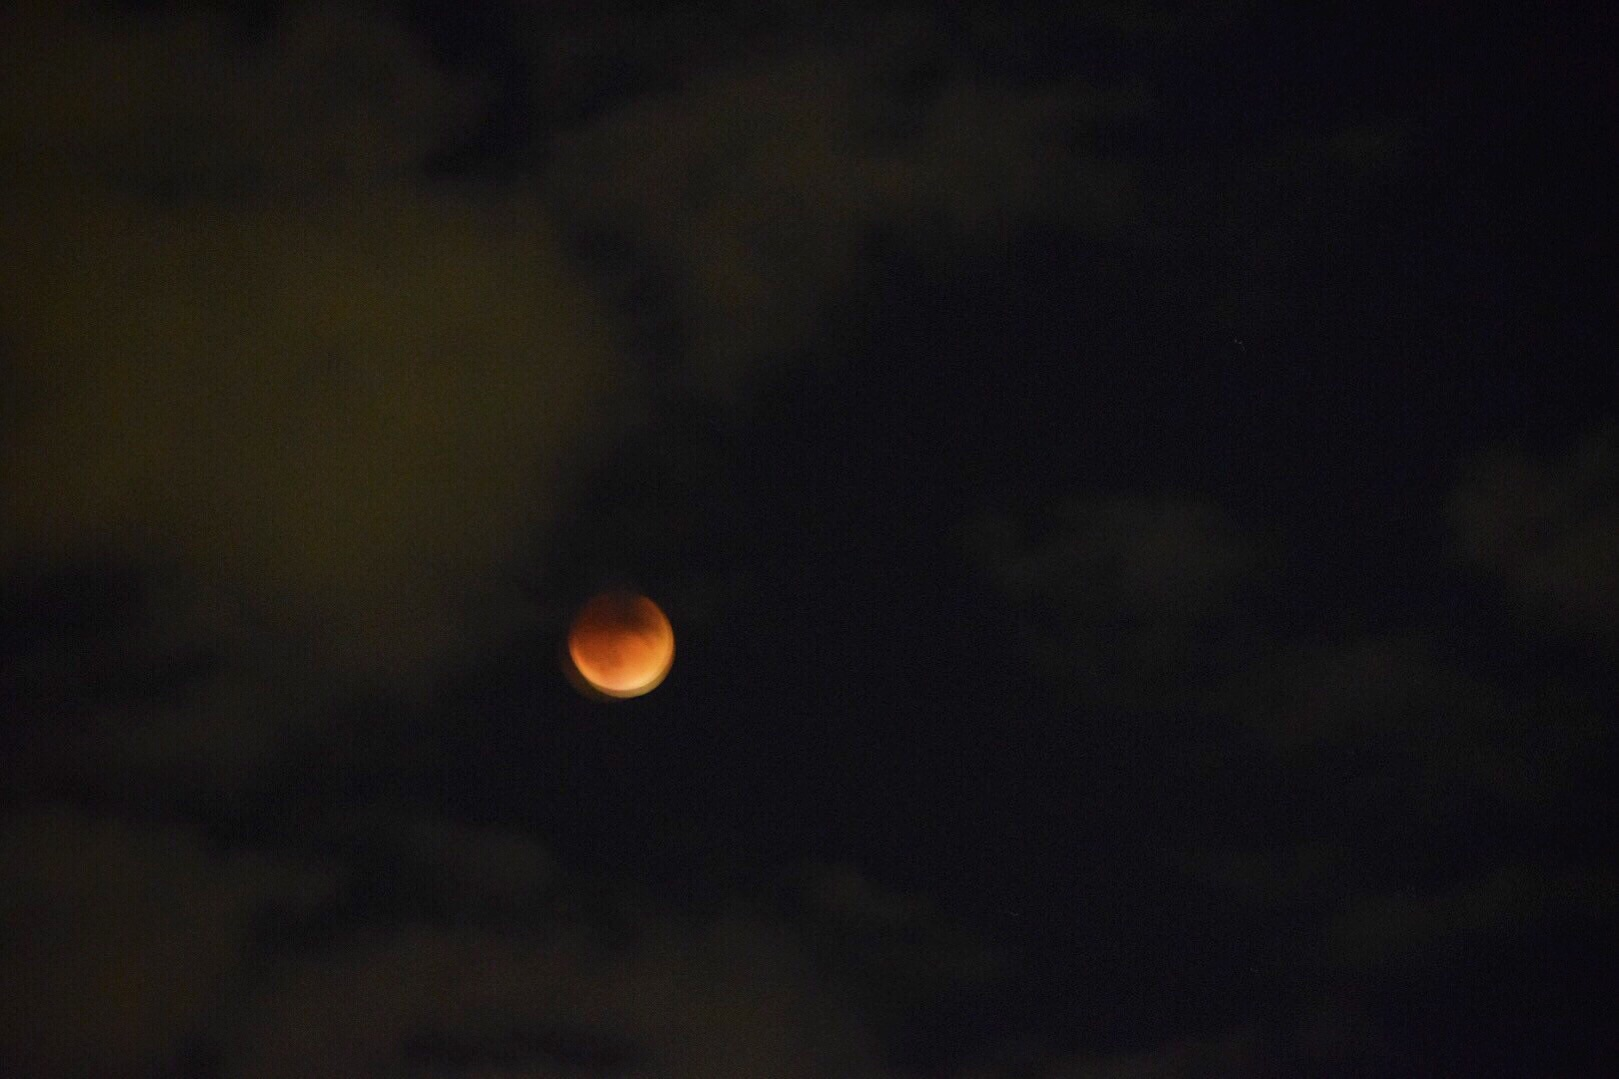 Lunar Eclipse view from our apartment - I cheated, this isn't an iphone photo. But its cool